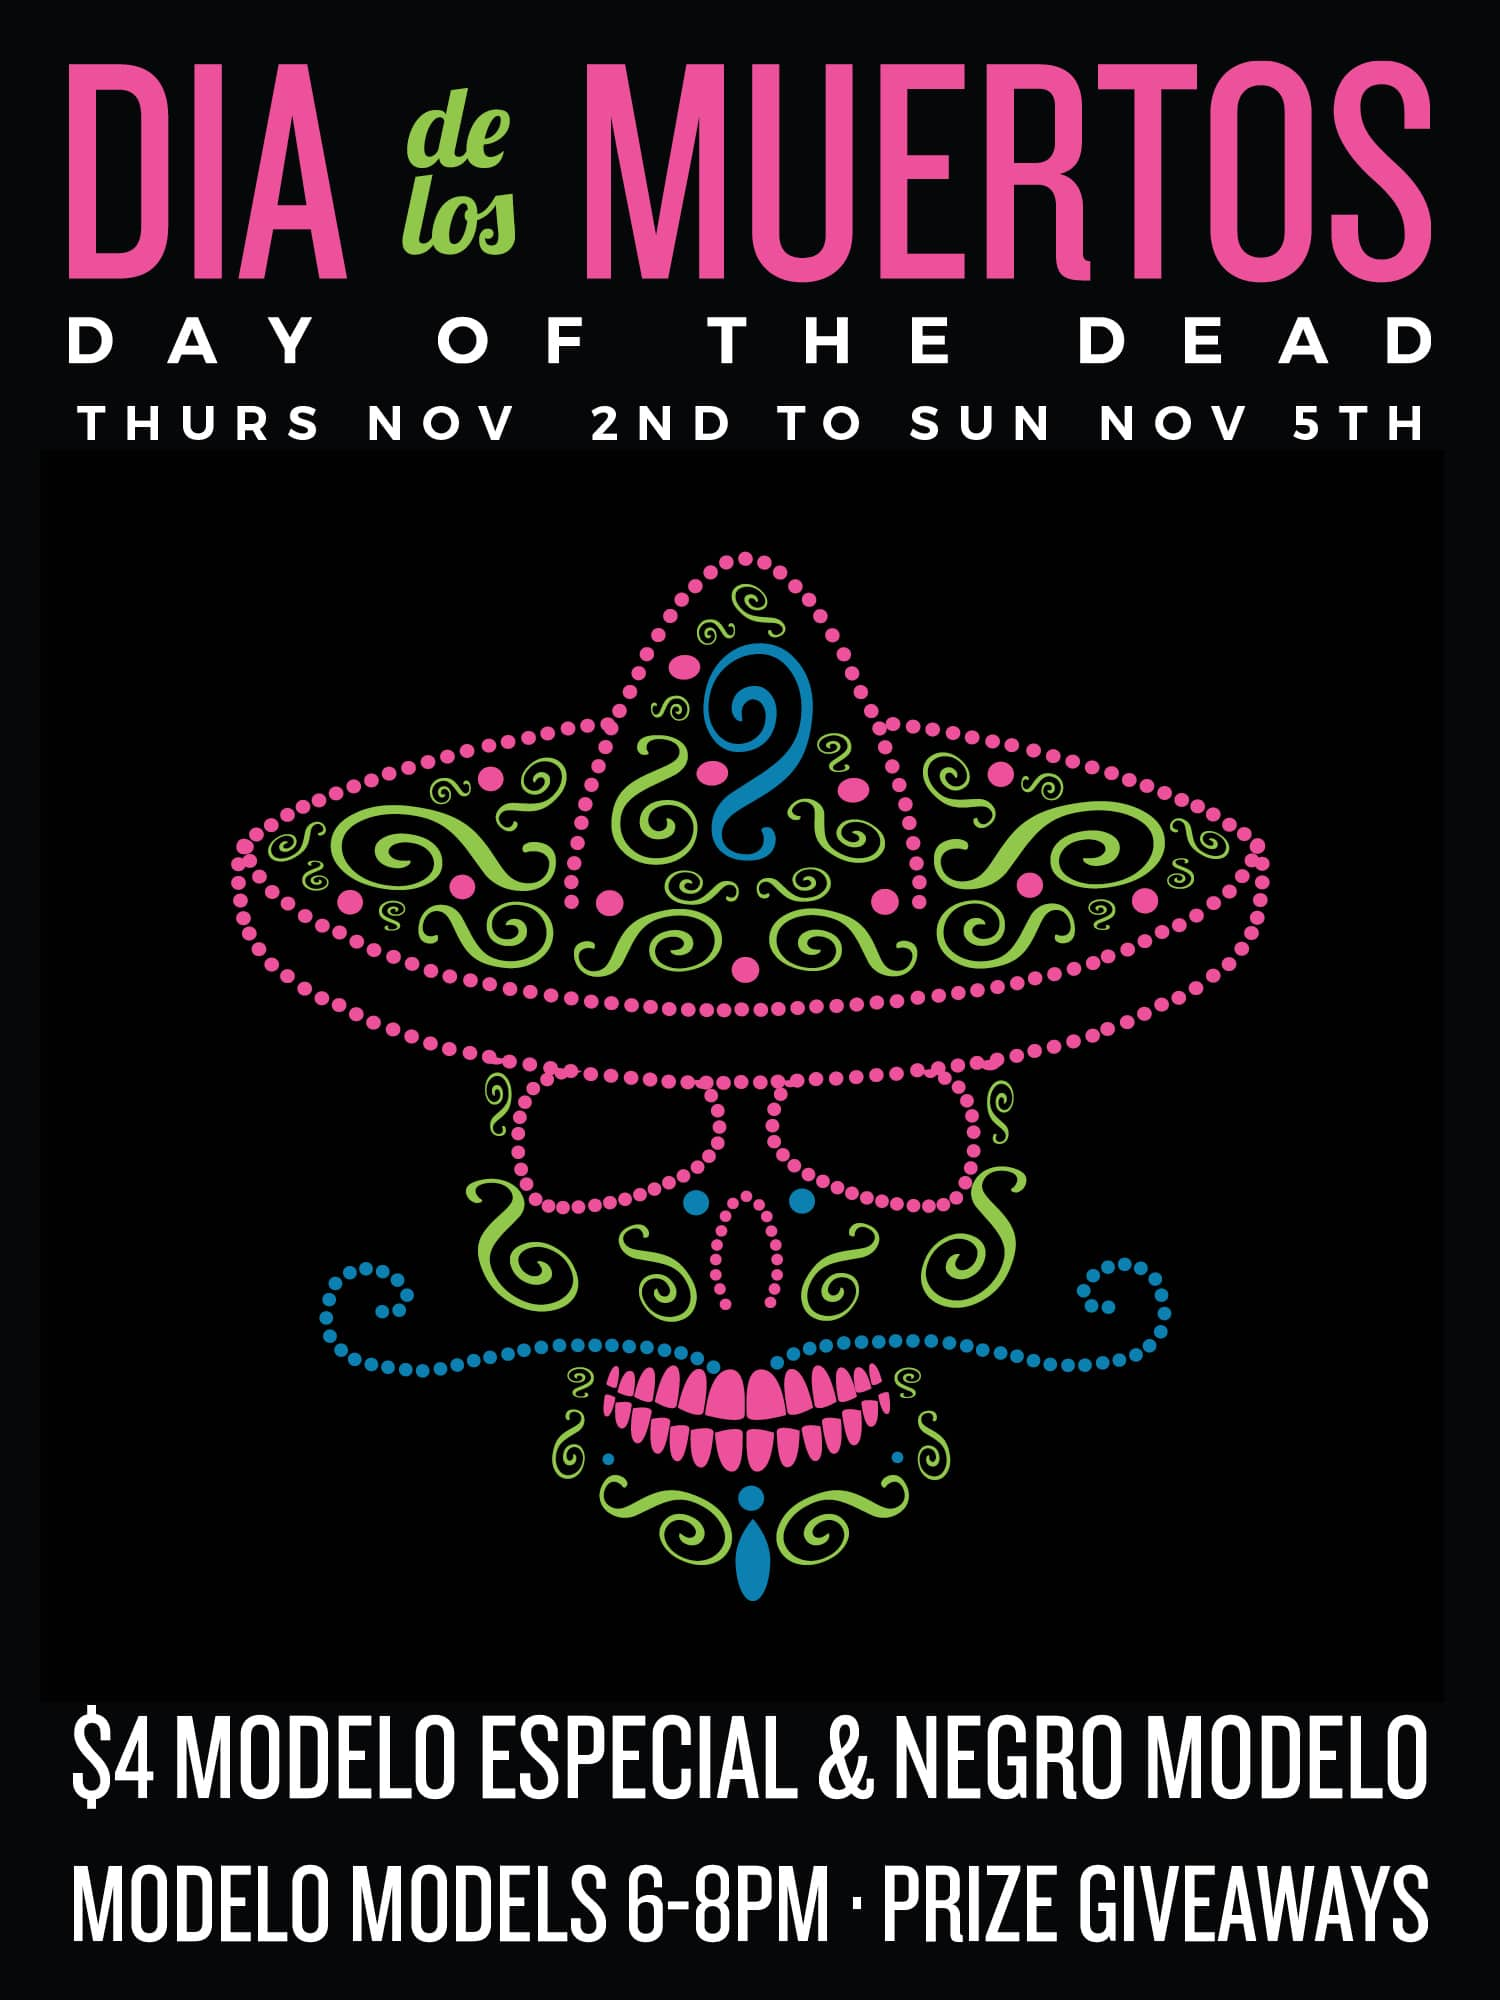 Celebrate Day of the Dead with us Nov 2nd-5th